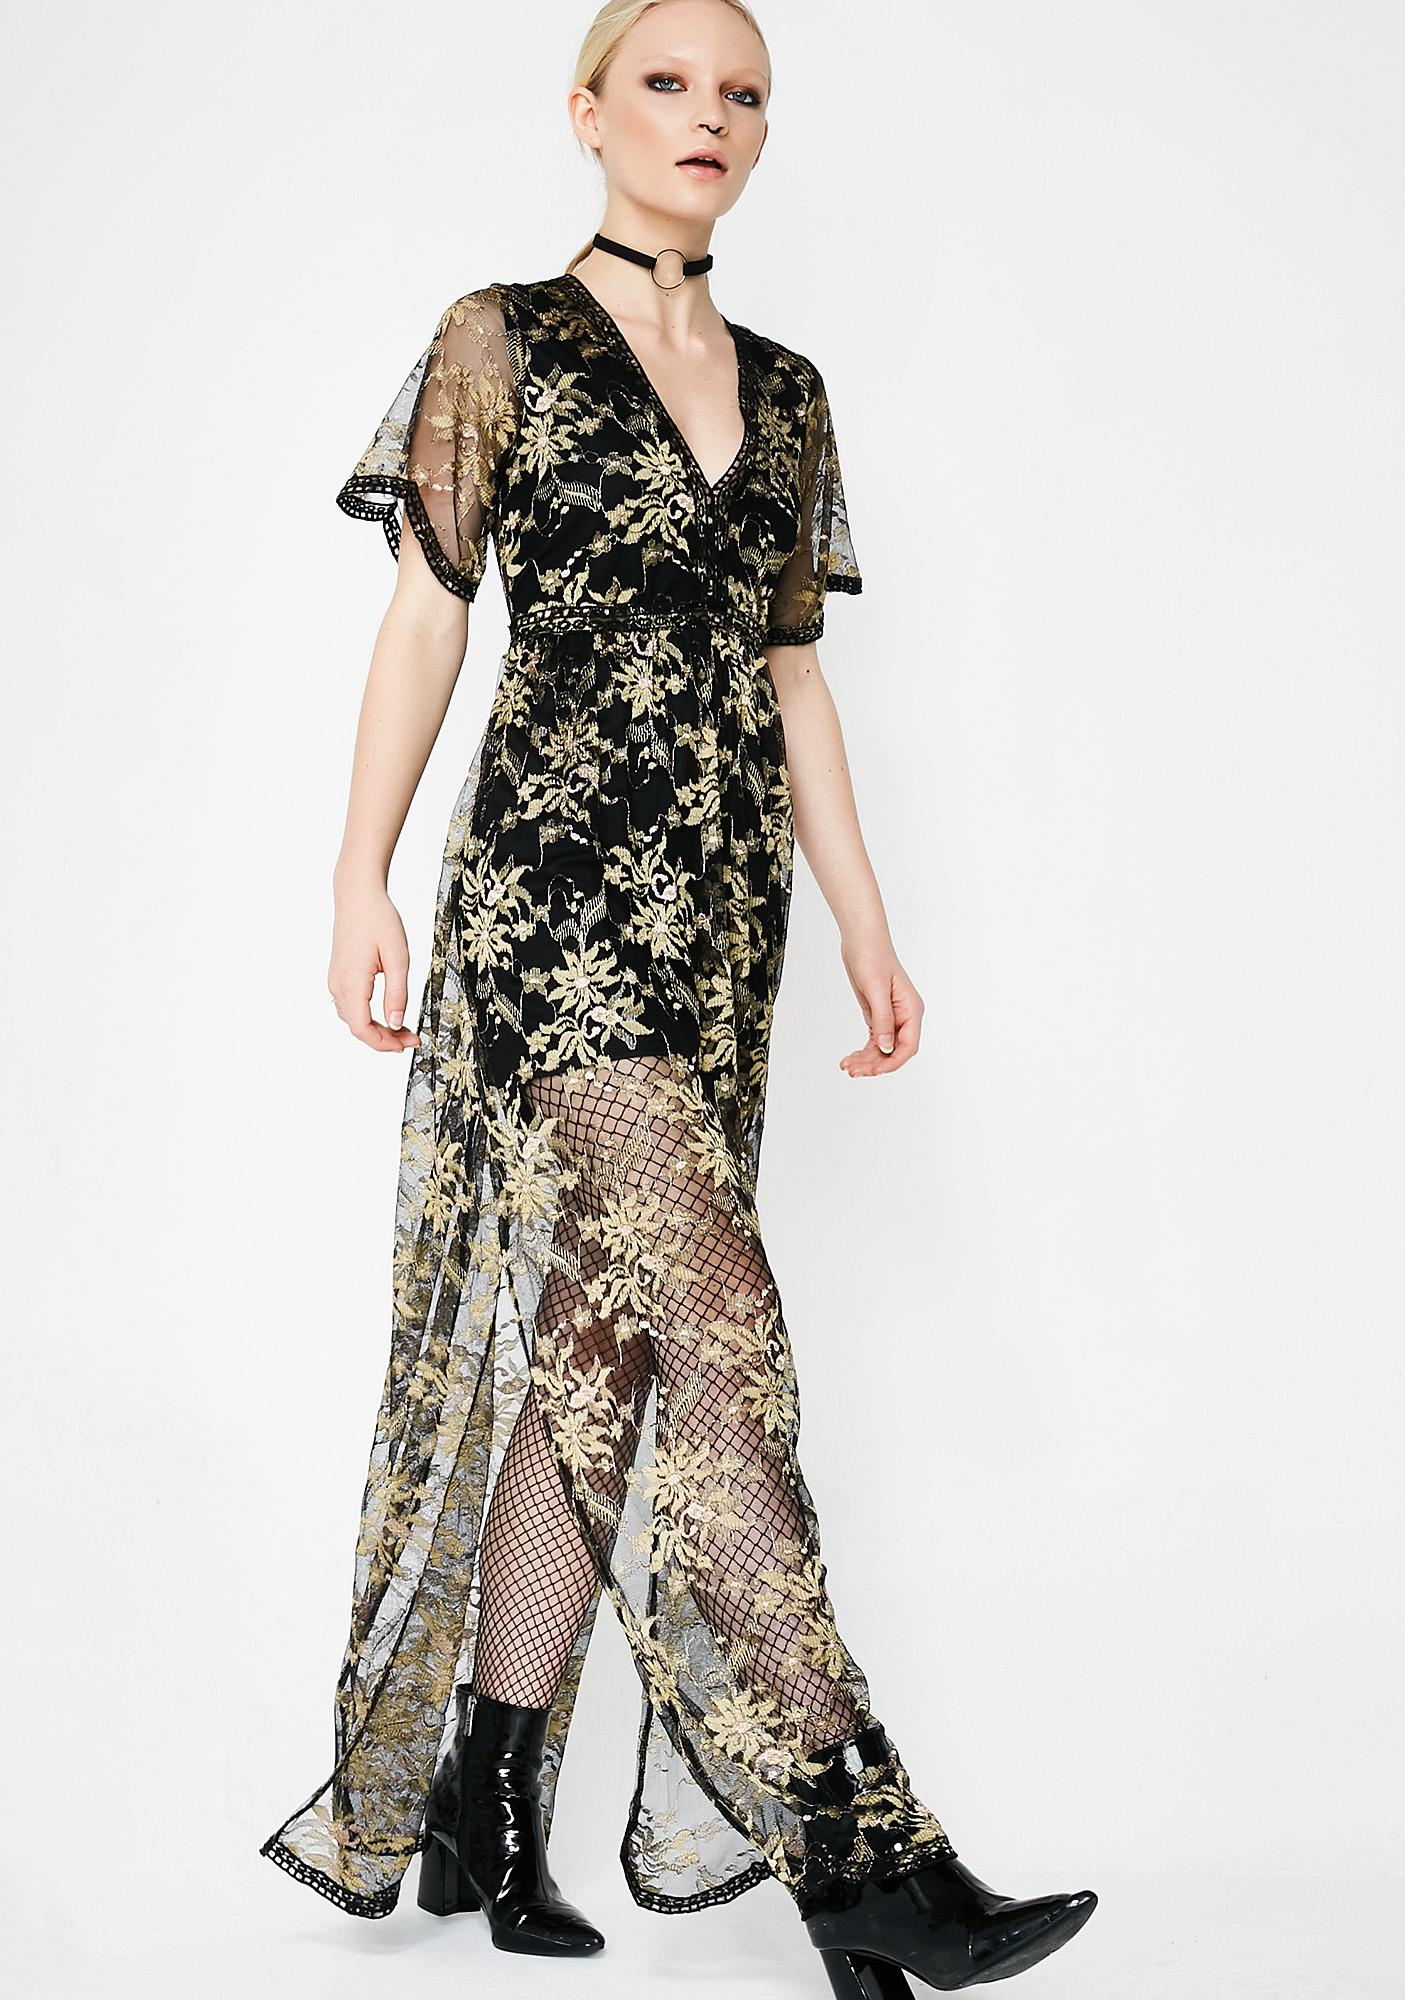 95cdb612fb2d Sheer Floral Black Maxi Dress | Dolls Kill